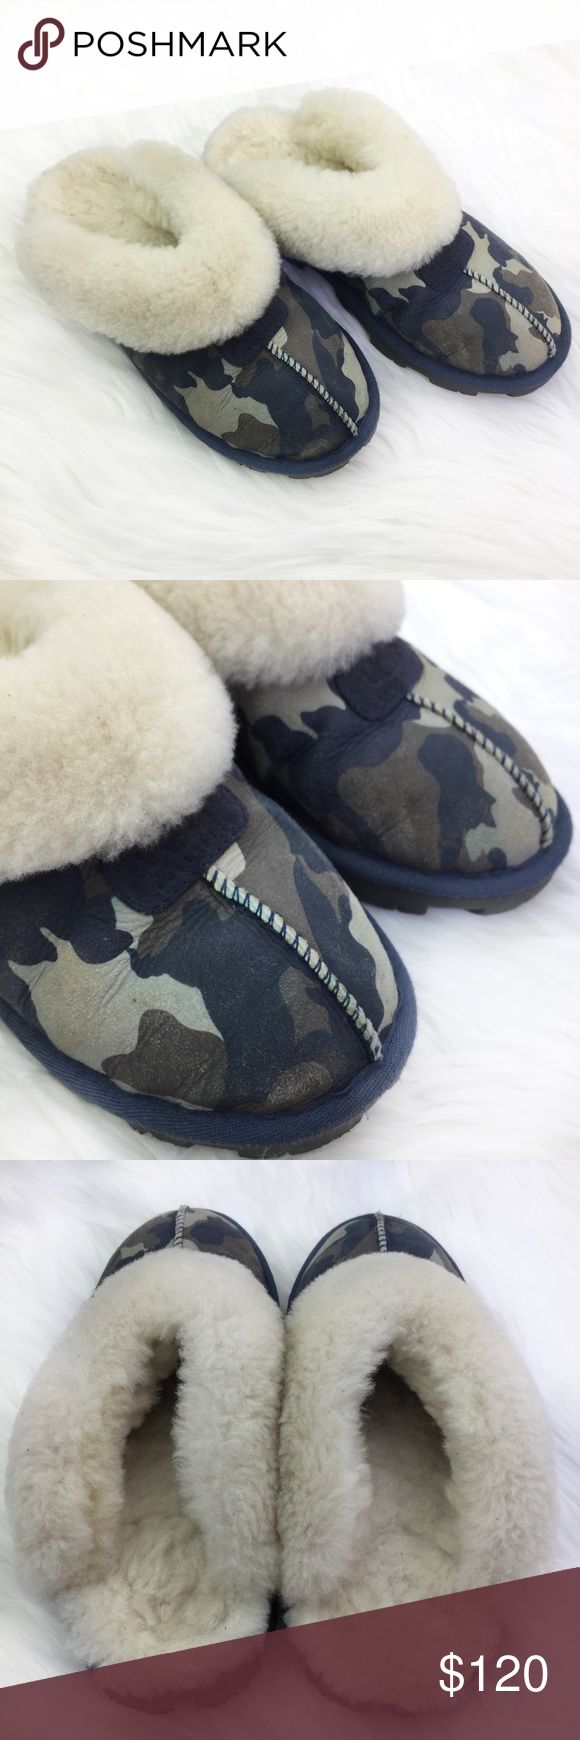 UGG Coquette Camo Sheepskin Slipper Clogs •UGG Coquette Camo Suede Sheepskin Slipper Clogs •Women's Size 5 •Retail $120 •In great gently used condition with light wear on inner and bottom soles, one small spot where color bled (pictured) UGG Shoes Slippers